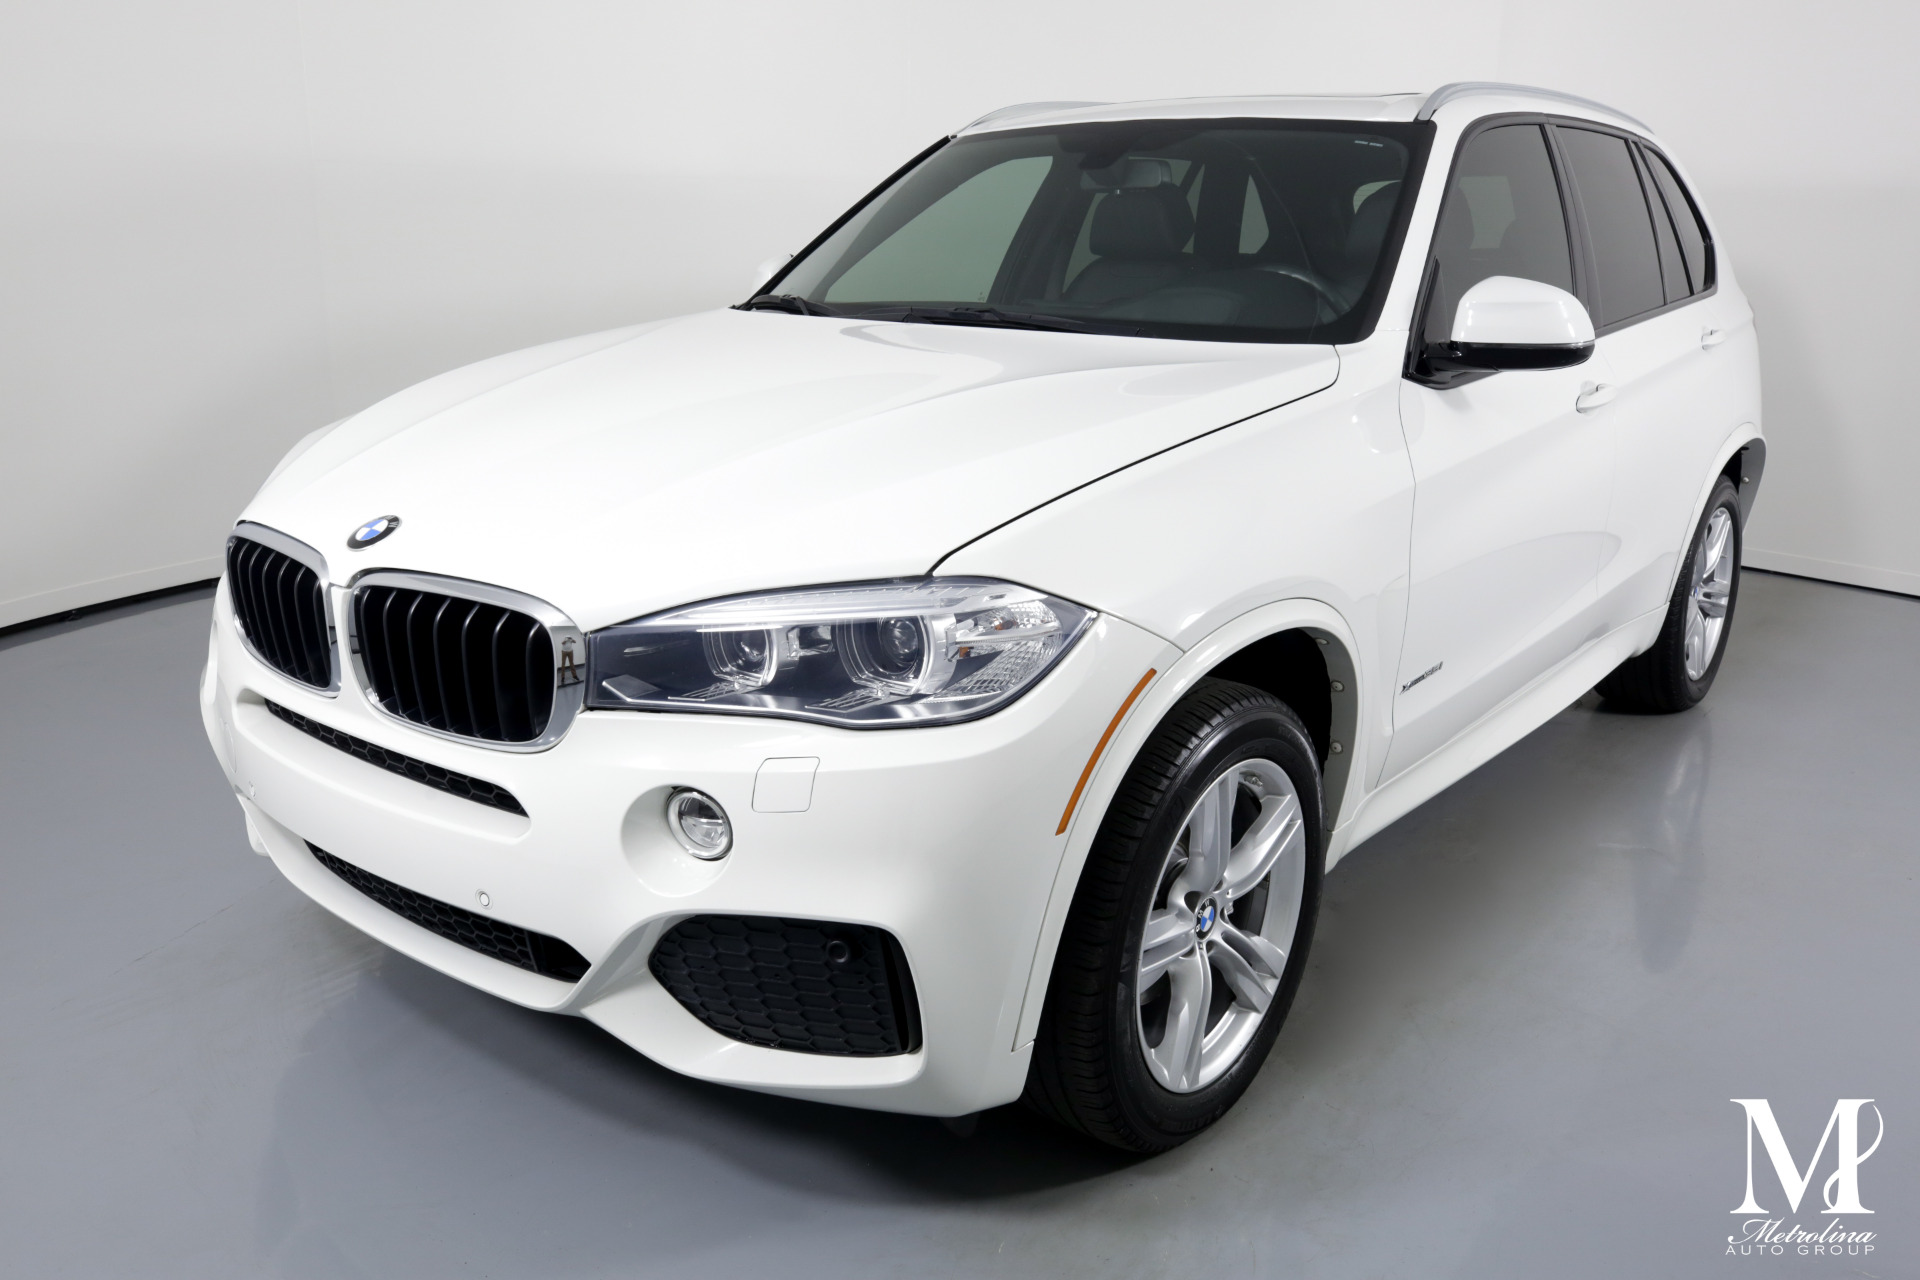 Used 2017 BMW X5 xDrive35i for sale $31,996 at Metrolina Auto Group in Charlotte NC 28217 - 4